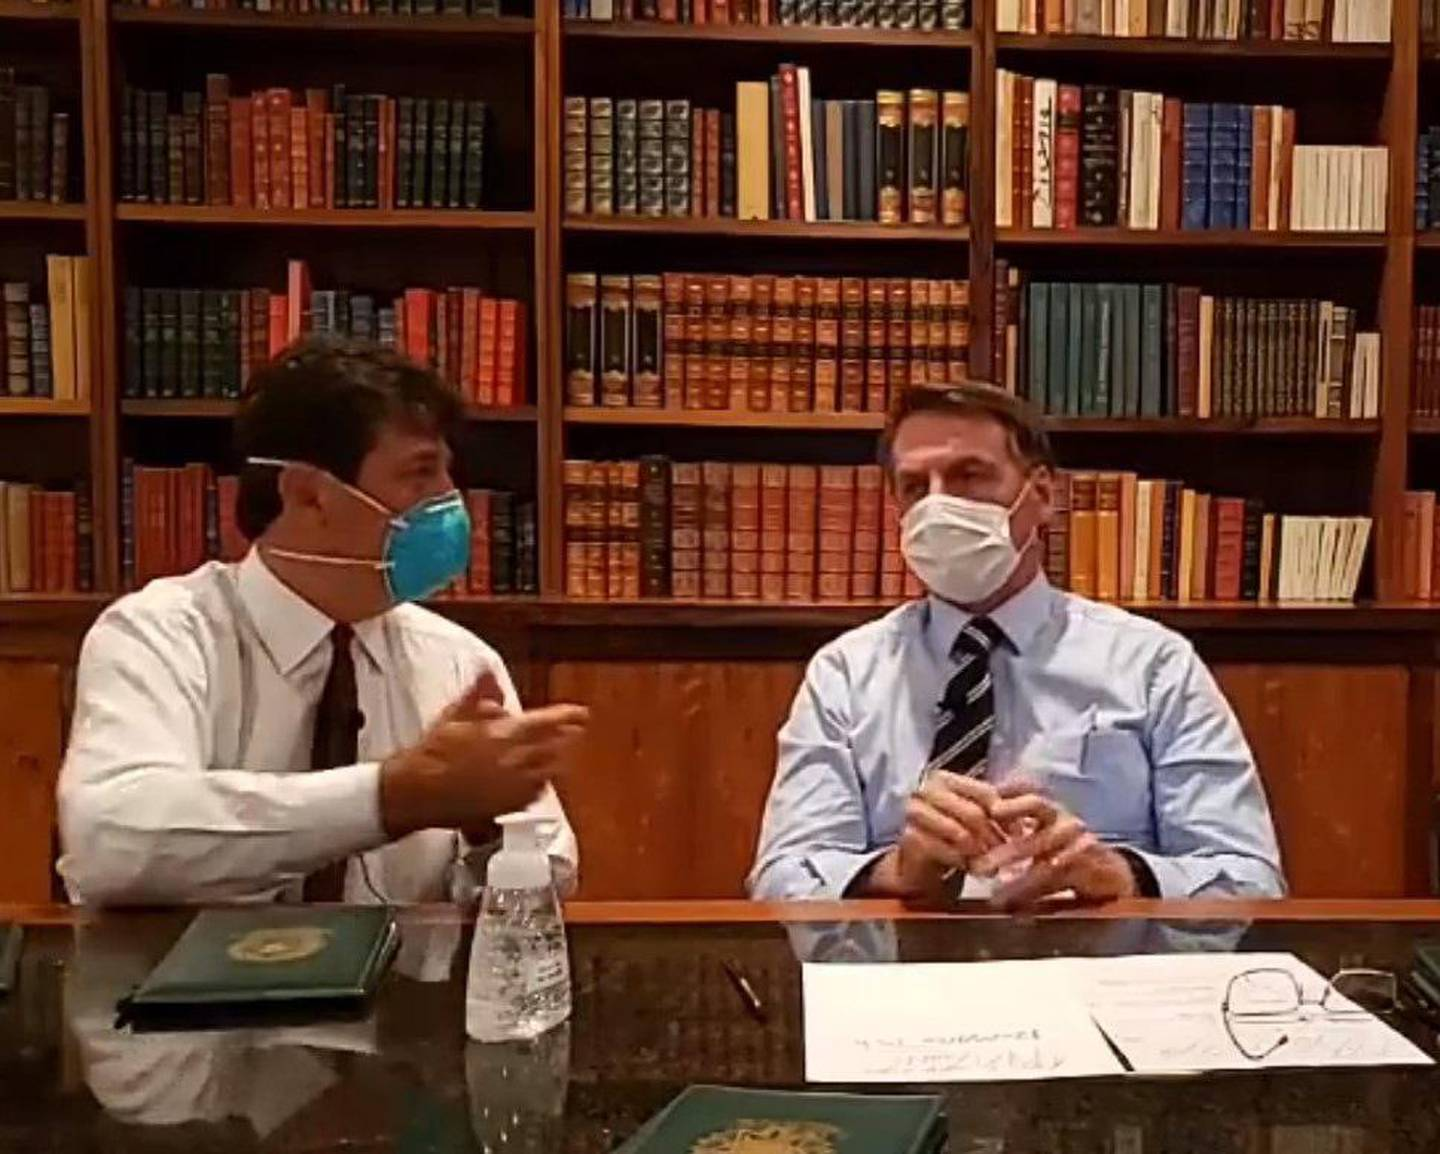 epa08290904 A grab from a video made available by official account of the President of Brazil Jair Bolsonaro which shows President of Brazil Jair Bolsonaro (R) and Brazilian Minister of Health, Luiz Henrique Mandetta (L) while participating in a video published on his channel, while remaining in isolation, at the Palacio de la Alvorada, in Brasilia , Brazil, 12 March 2020. Brazilian President Jair Bolsonaro is awaiting test results to determine if he contracted the coronavirus after one of his close associates tested positive, but he has no symptoms of the disease, clarified this Thursday one of his sons, Deputy Eduardo Bolsonaro.  EPA/Jair Bolsonaro / HANDOUT  HANDOUT EDITORIAL USE ONLY/NO SALES